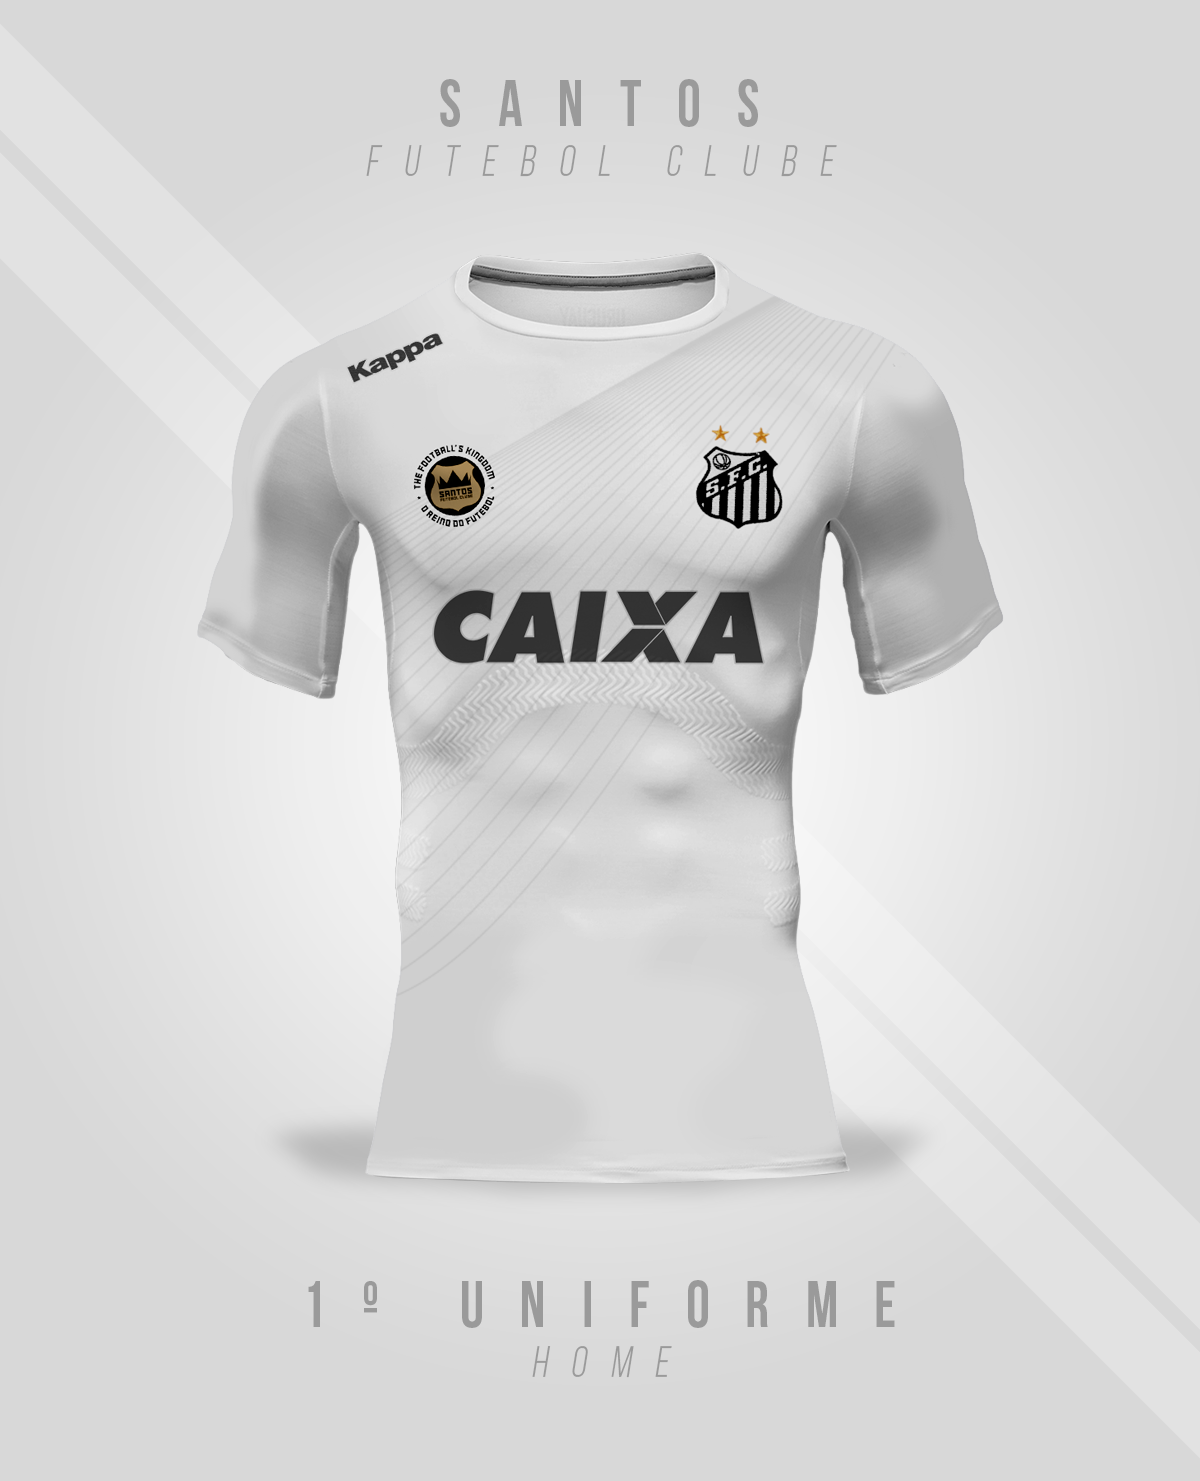 Santos F.C. Kit Concept. Giovanni Musetti •. Follow Following Unfollow. Save  to Collection e146b21ab